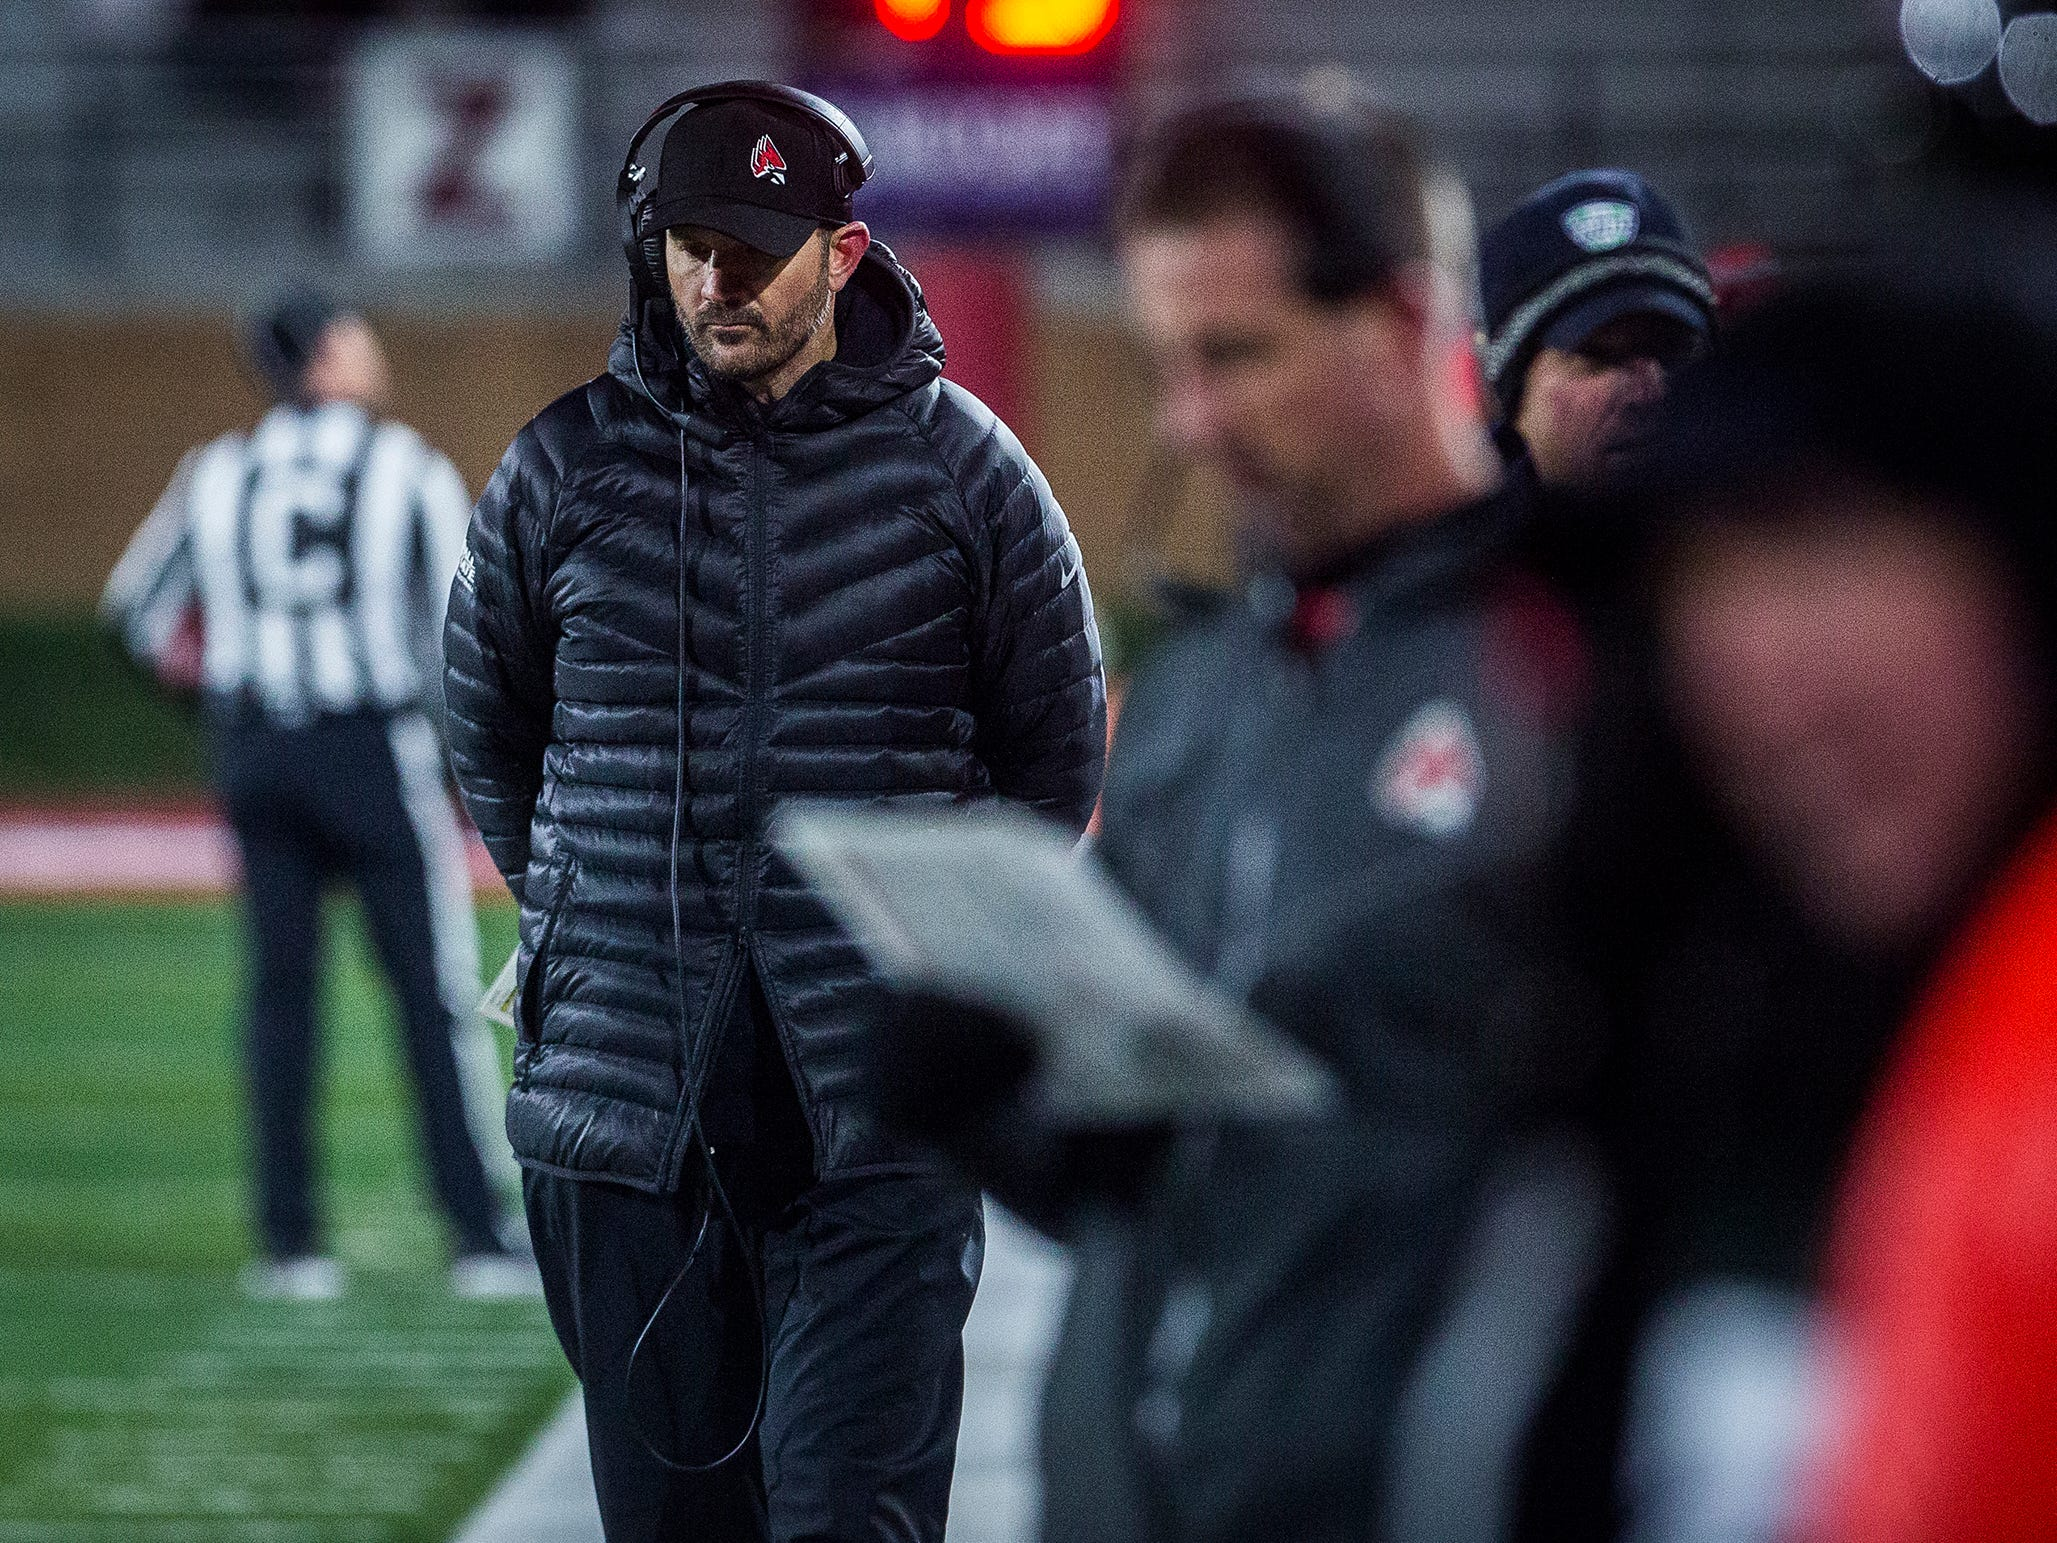 Ball State's Mike Neu walks the sideline during the game against Western Michigan at Scheumann Stadium Tuesday, Nov. 13, 2018.